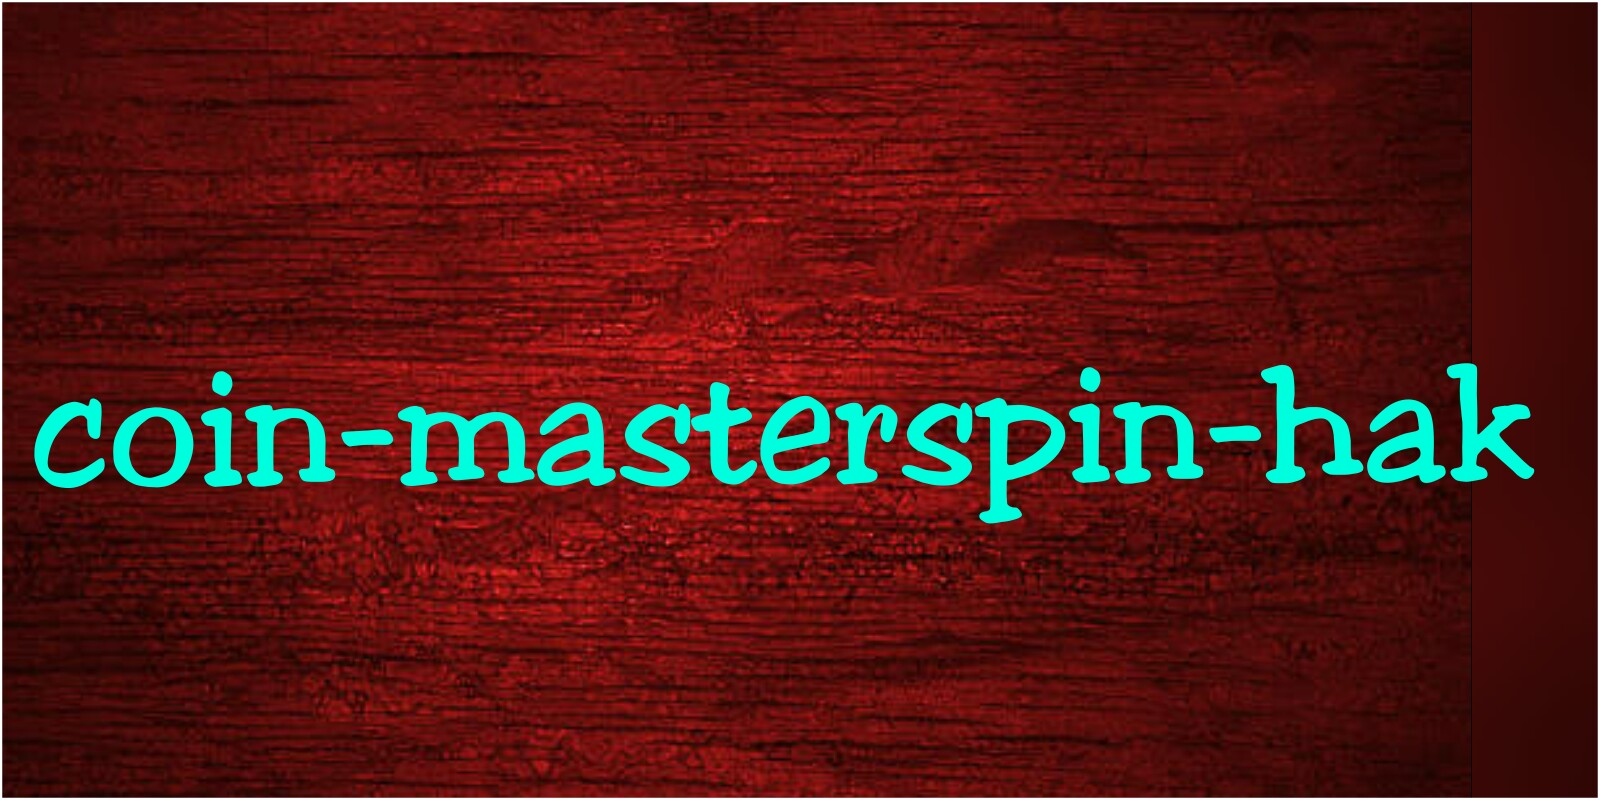 Free Coins And Spins For Coin Master